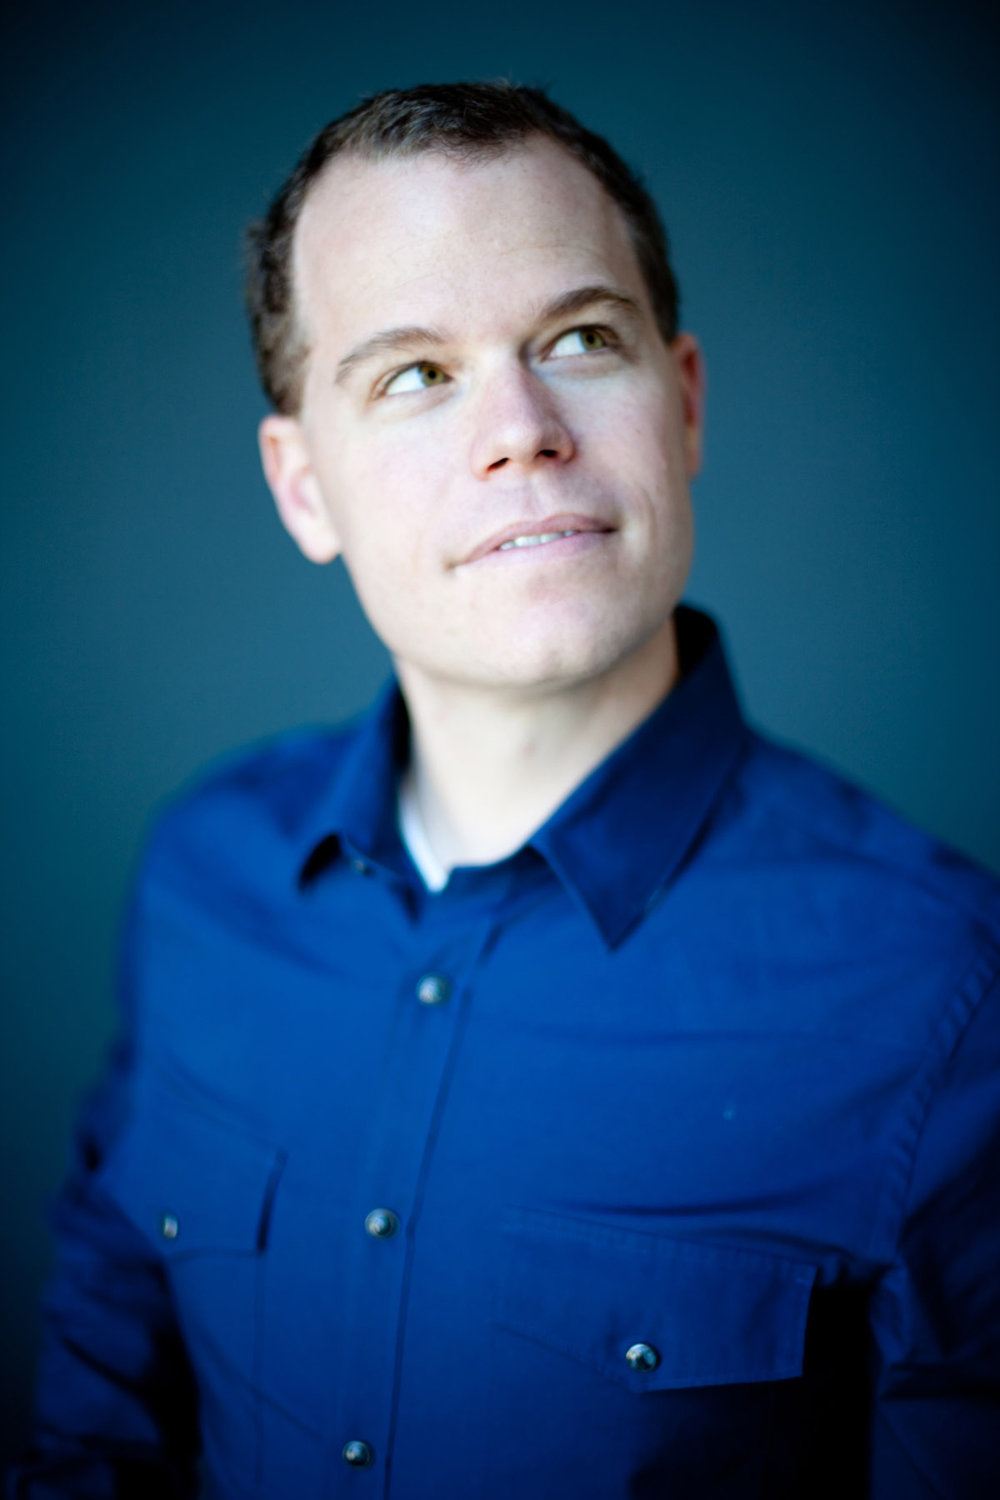 Matt-Marcy-Headshot-Blue-Shirt.jpg